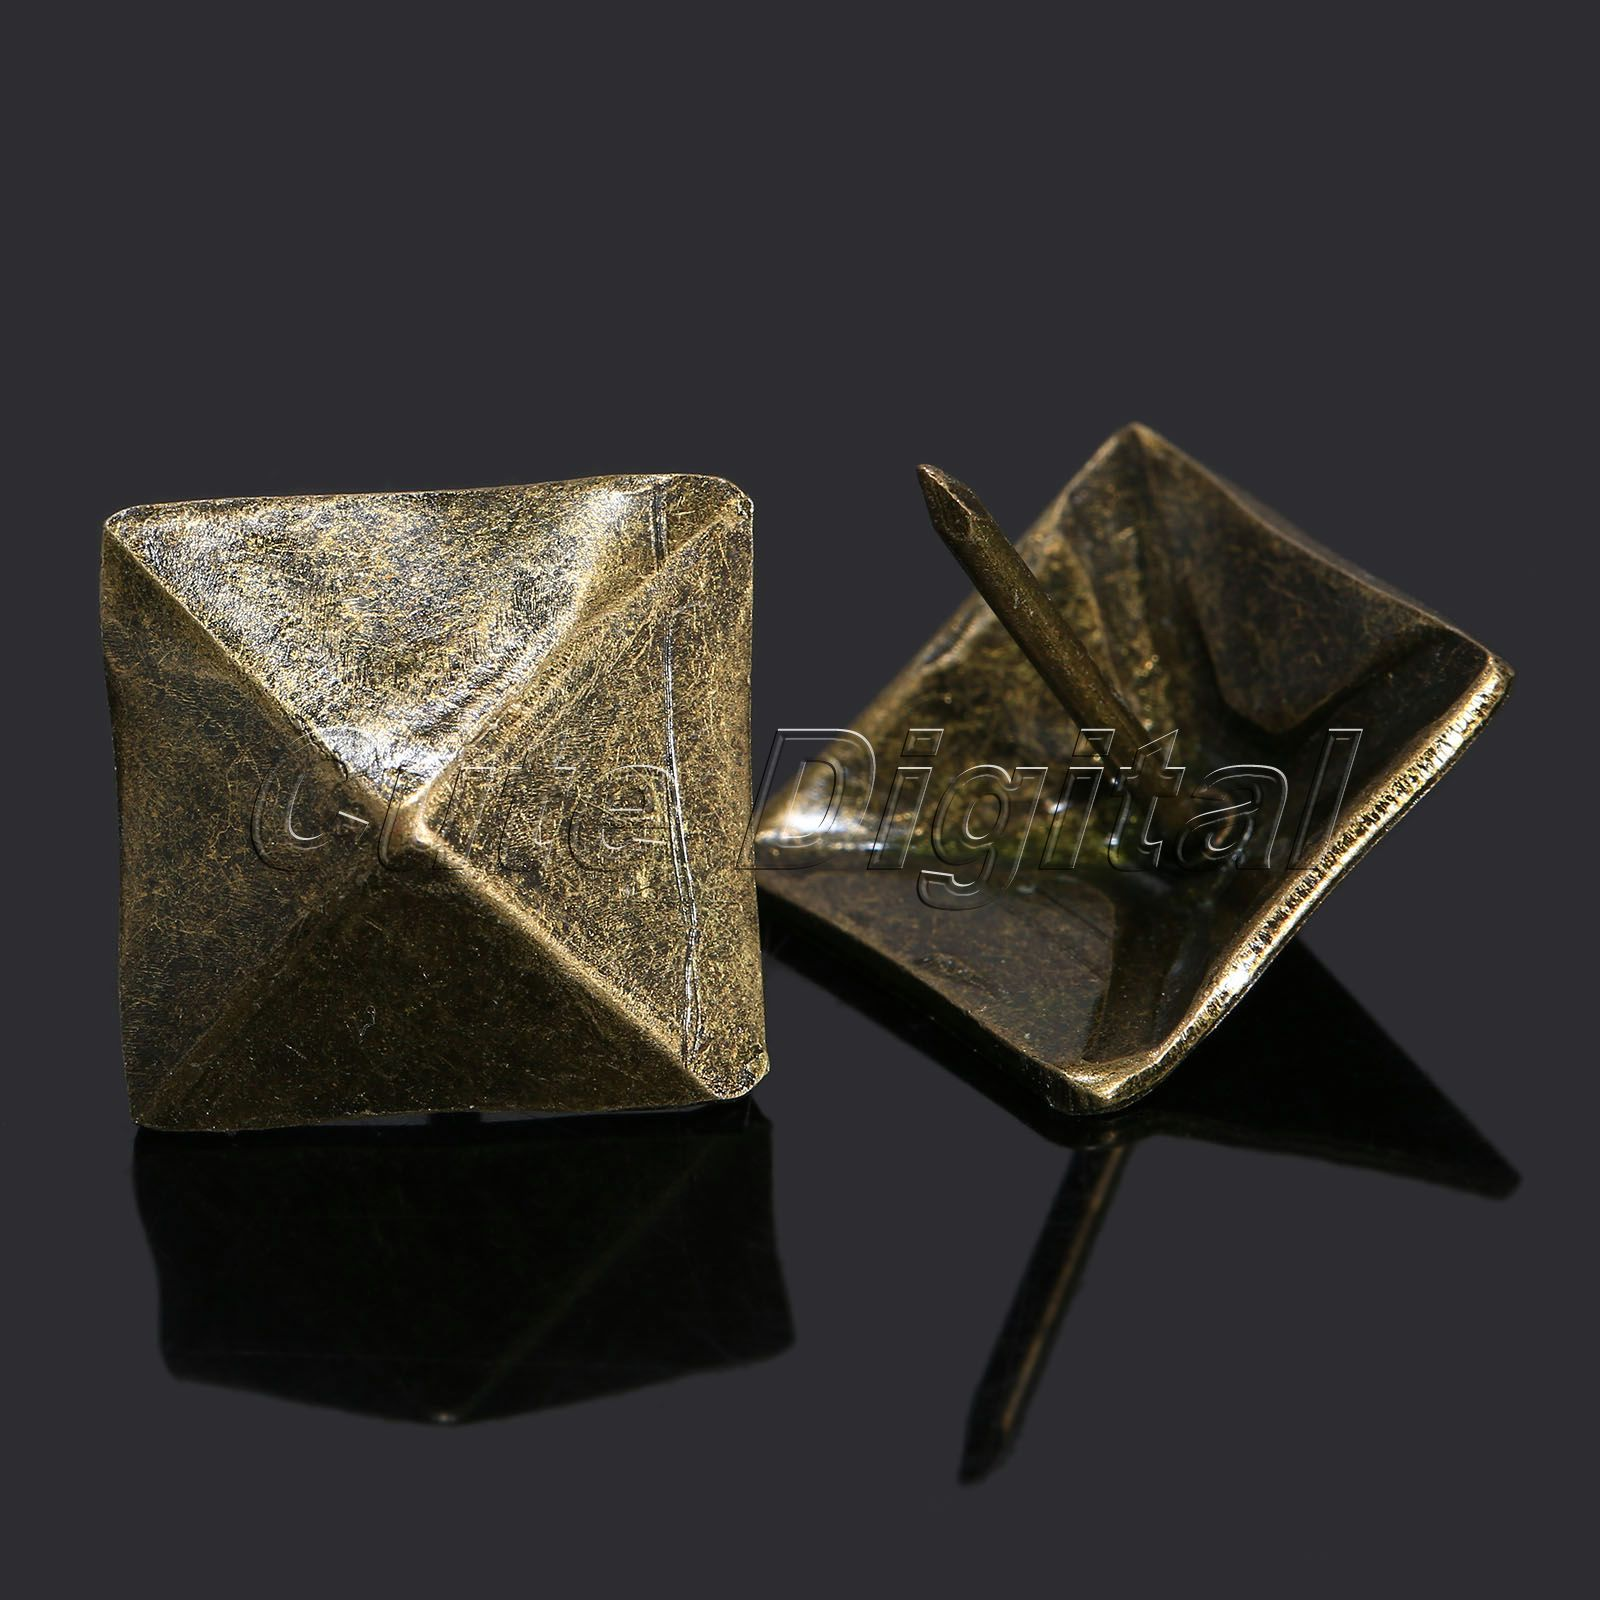 decorative nails for furniture. Decorative Studs For Furniture. 50pcs Tachas Upholstery Tacks Bronze Antique Square Nail Leather Nails Furniture